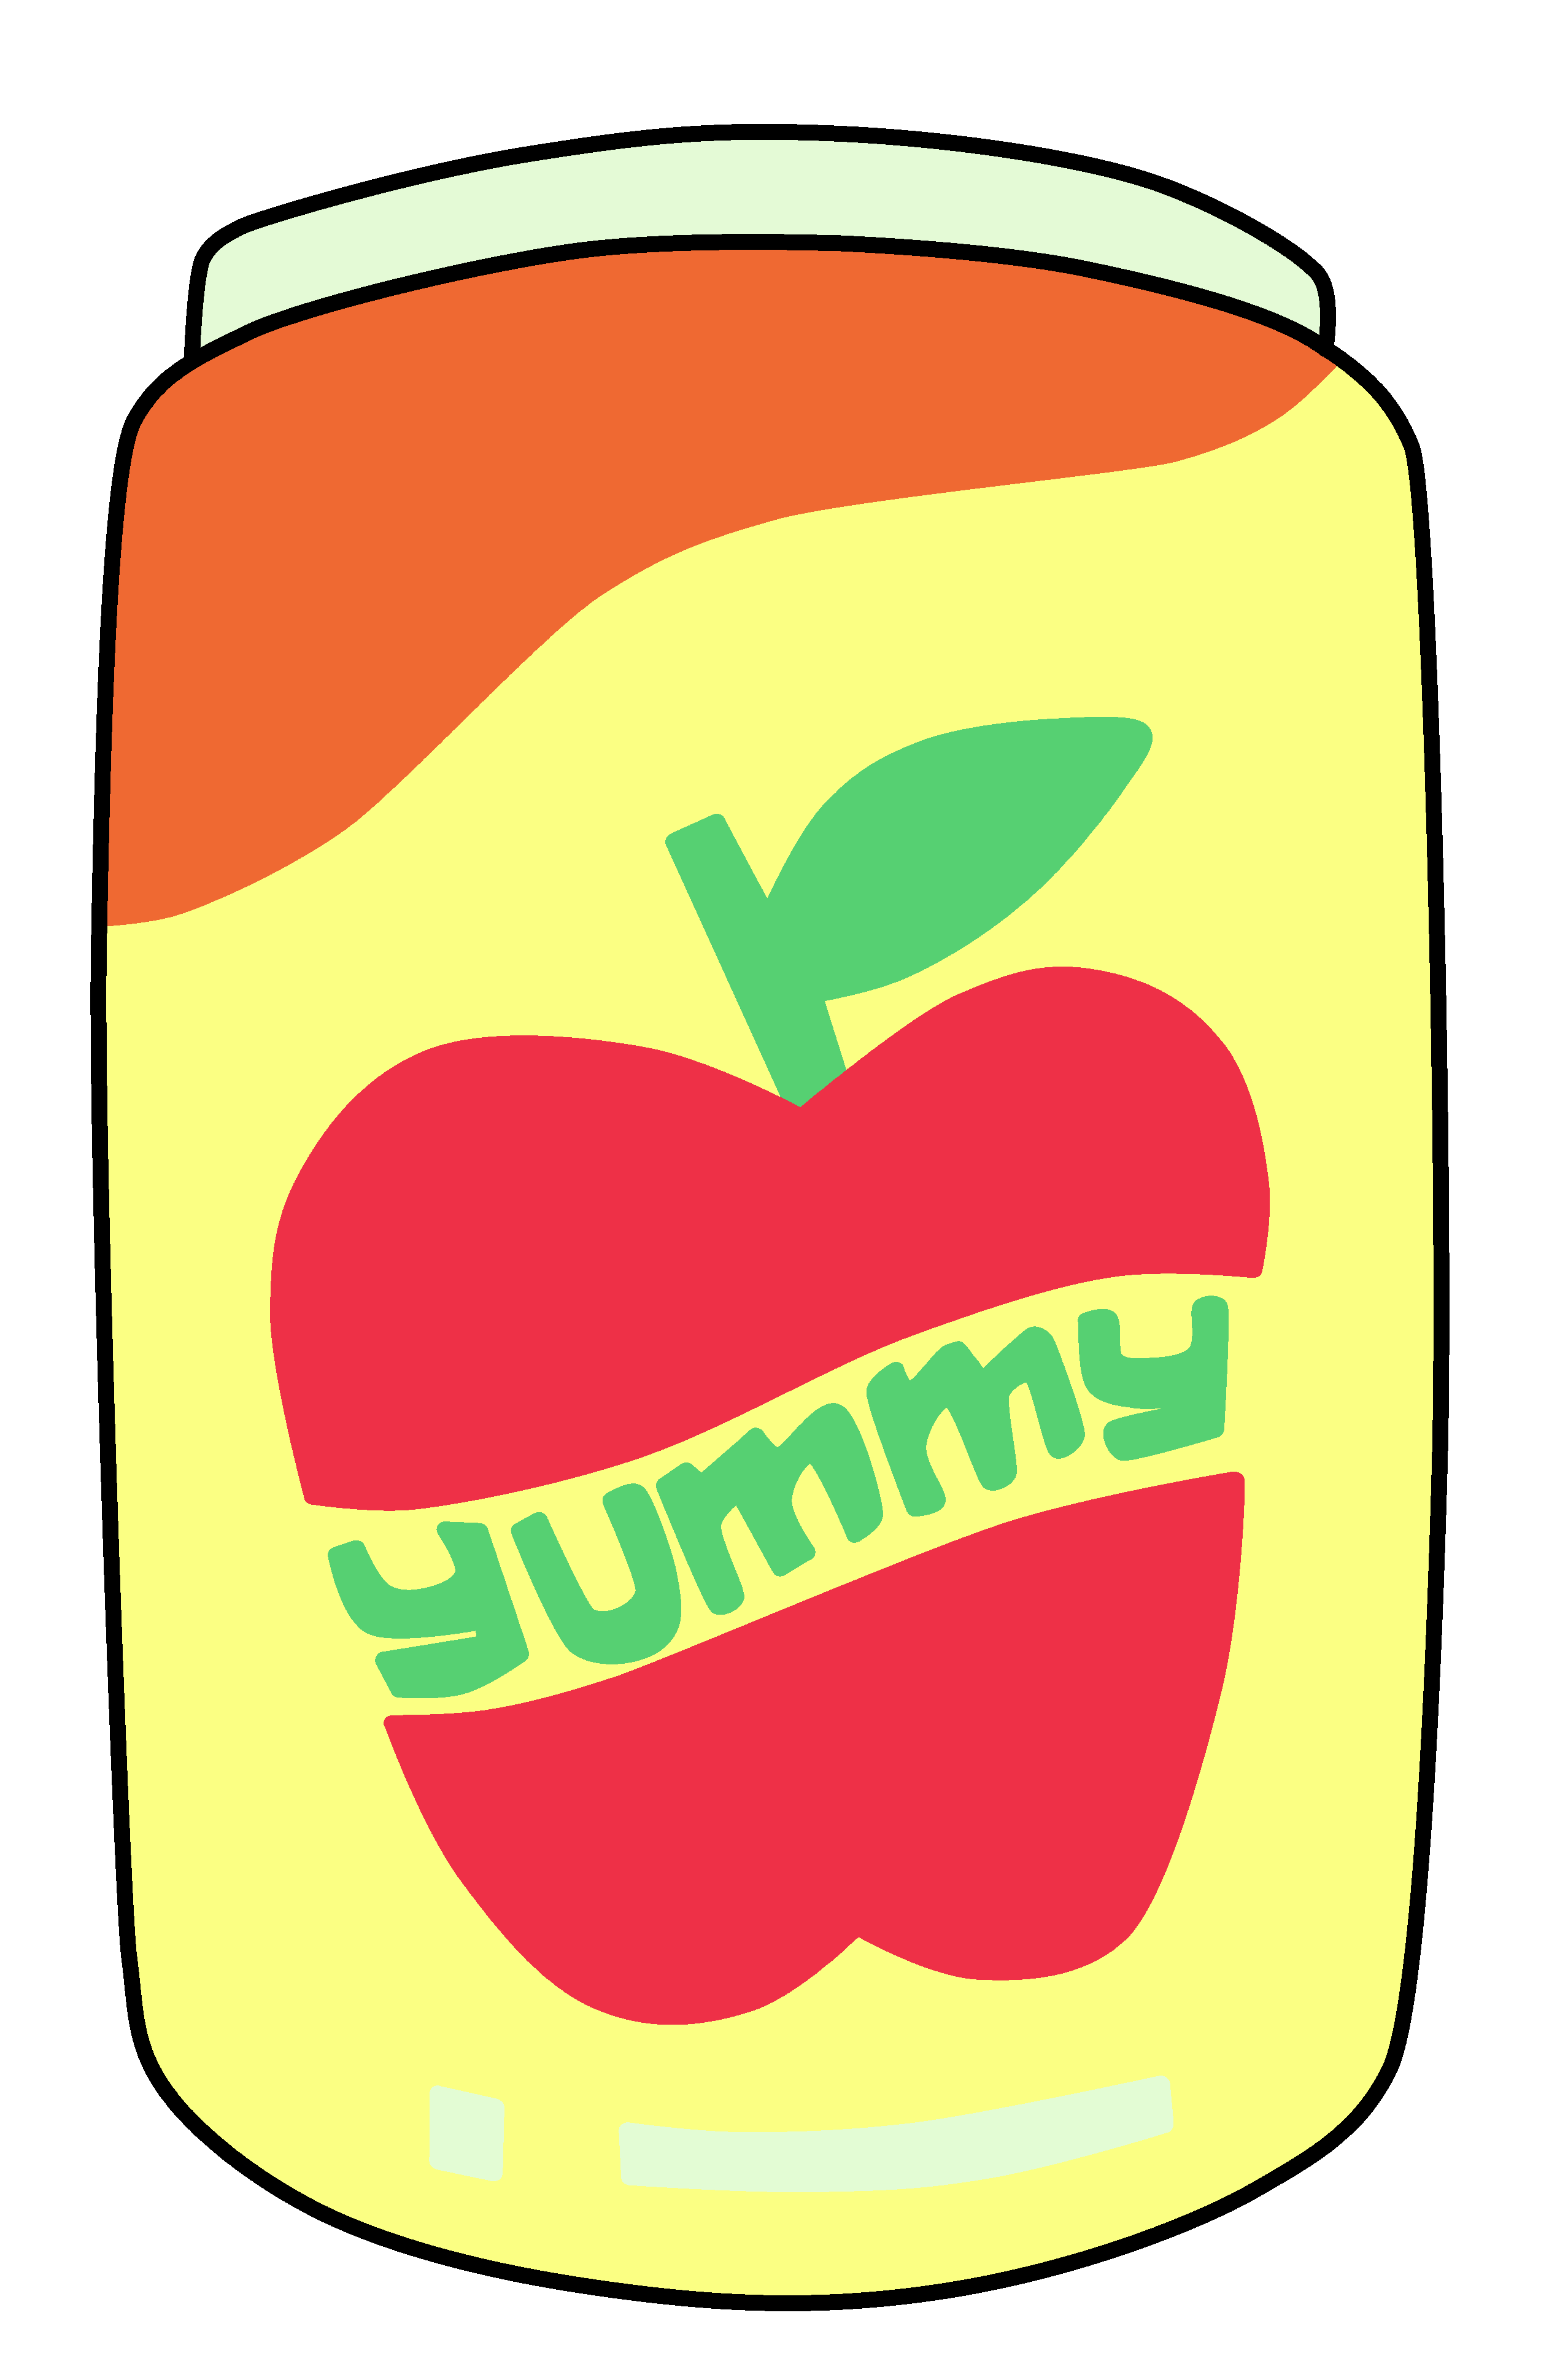 Minor objects food steven. Juice clipart chip